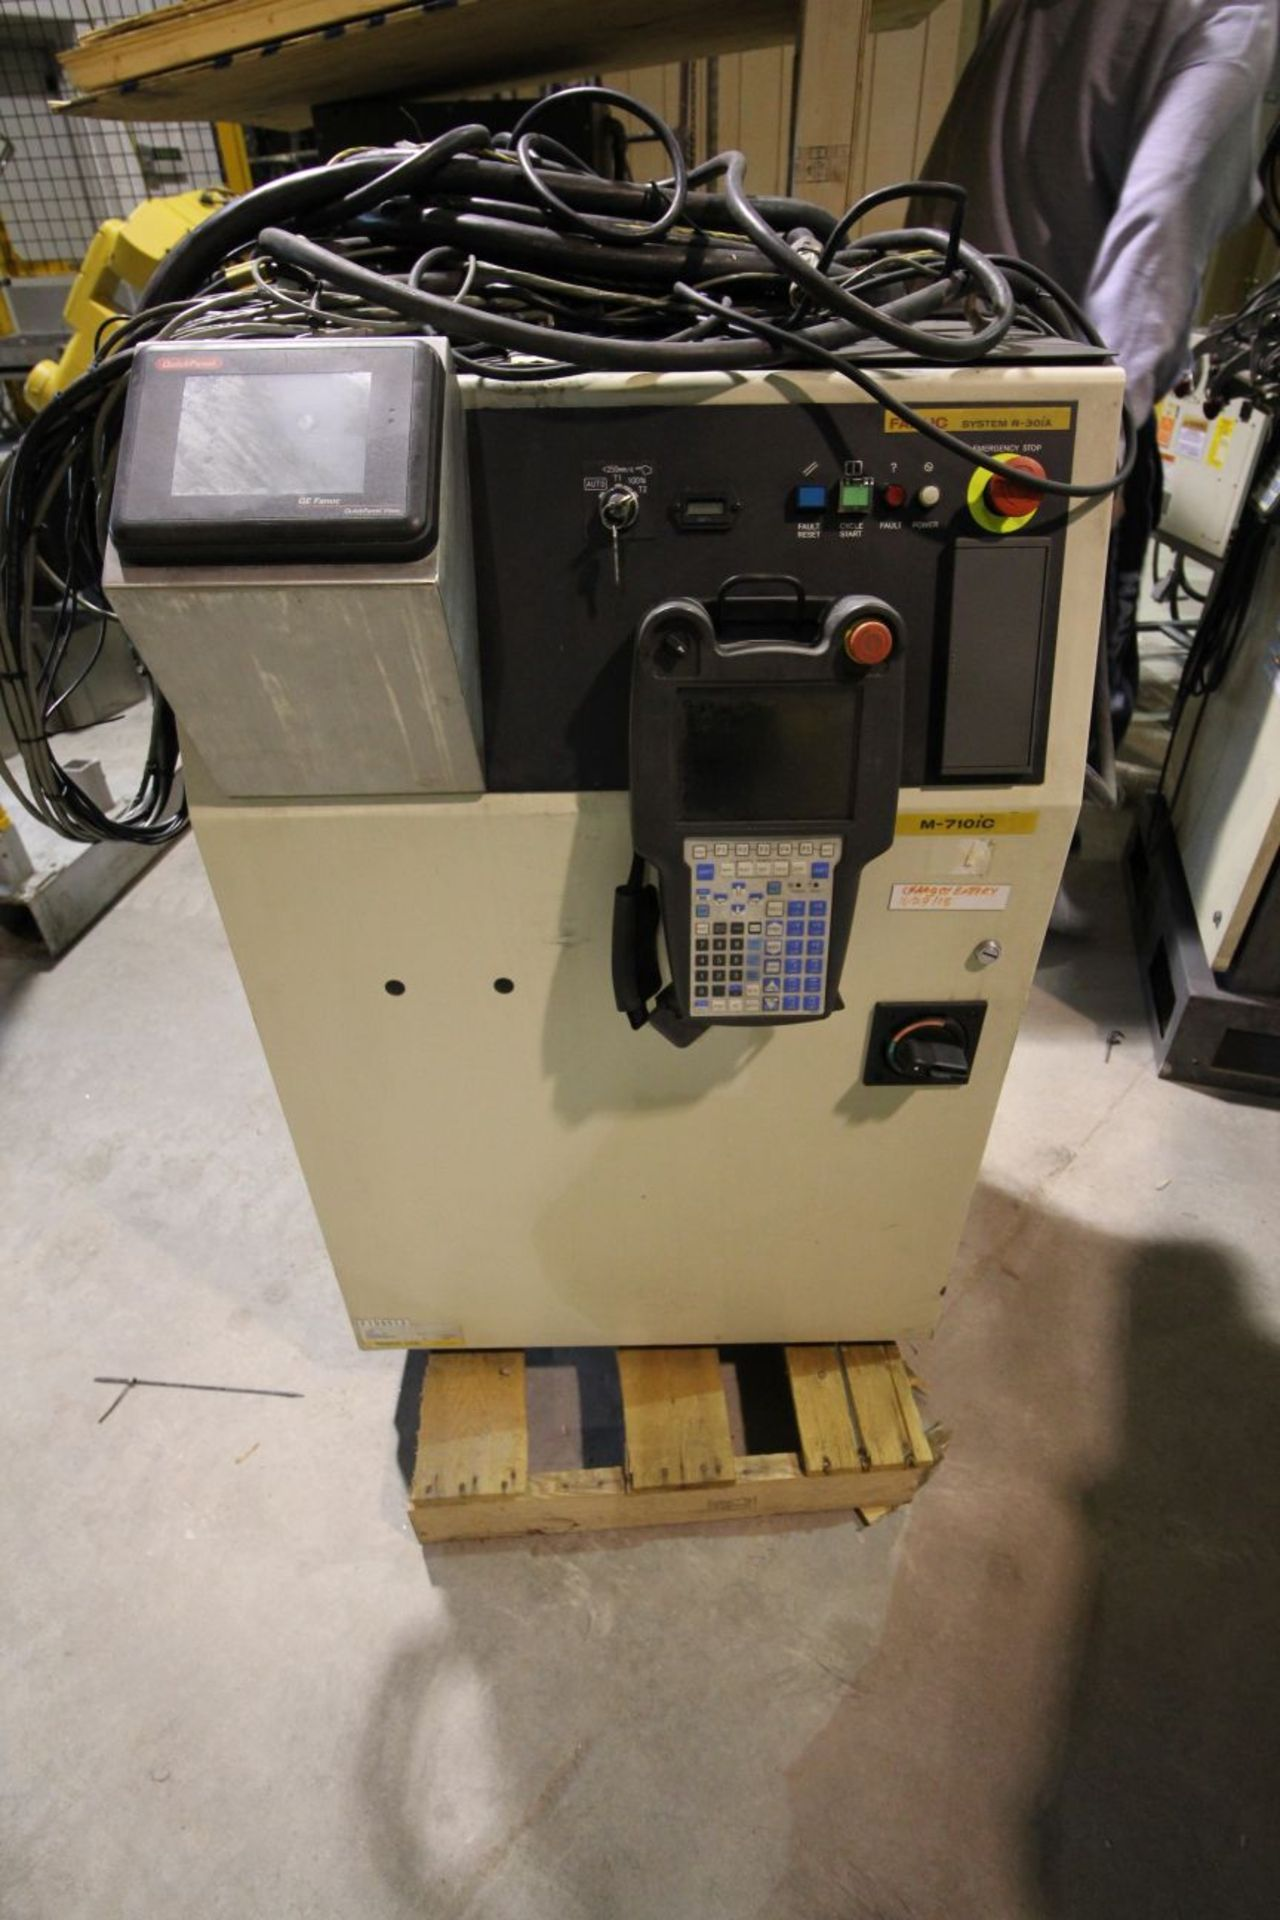 FANUC M710iC/50 6 AXIS CNC ROBOT WITH R30iA CONTROLLER AND VISION CONNECTIONS, SN 109513, YEAR 2011 - Image 5 of 8